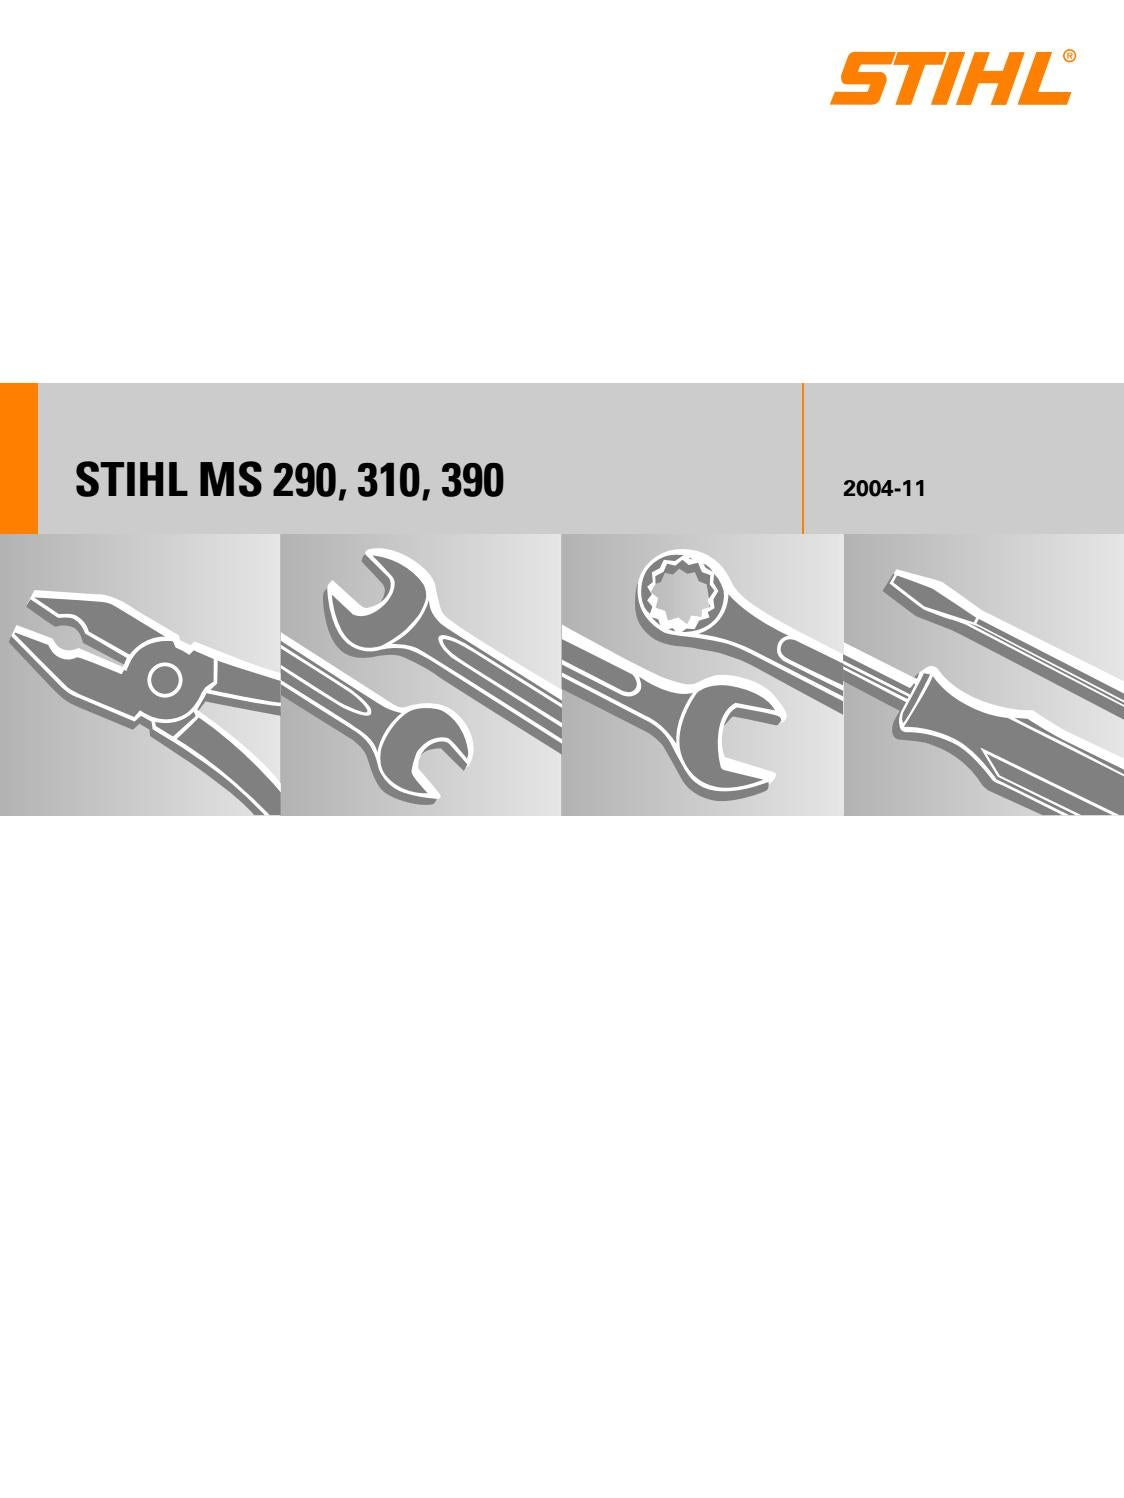 Stihl Ms 290 310 390 Service Manual By Glsense Issuu